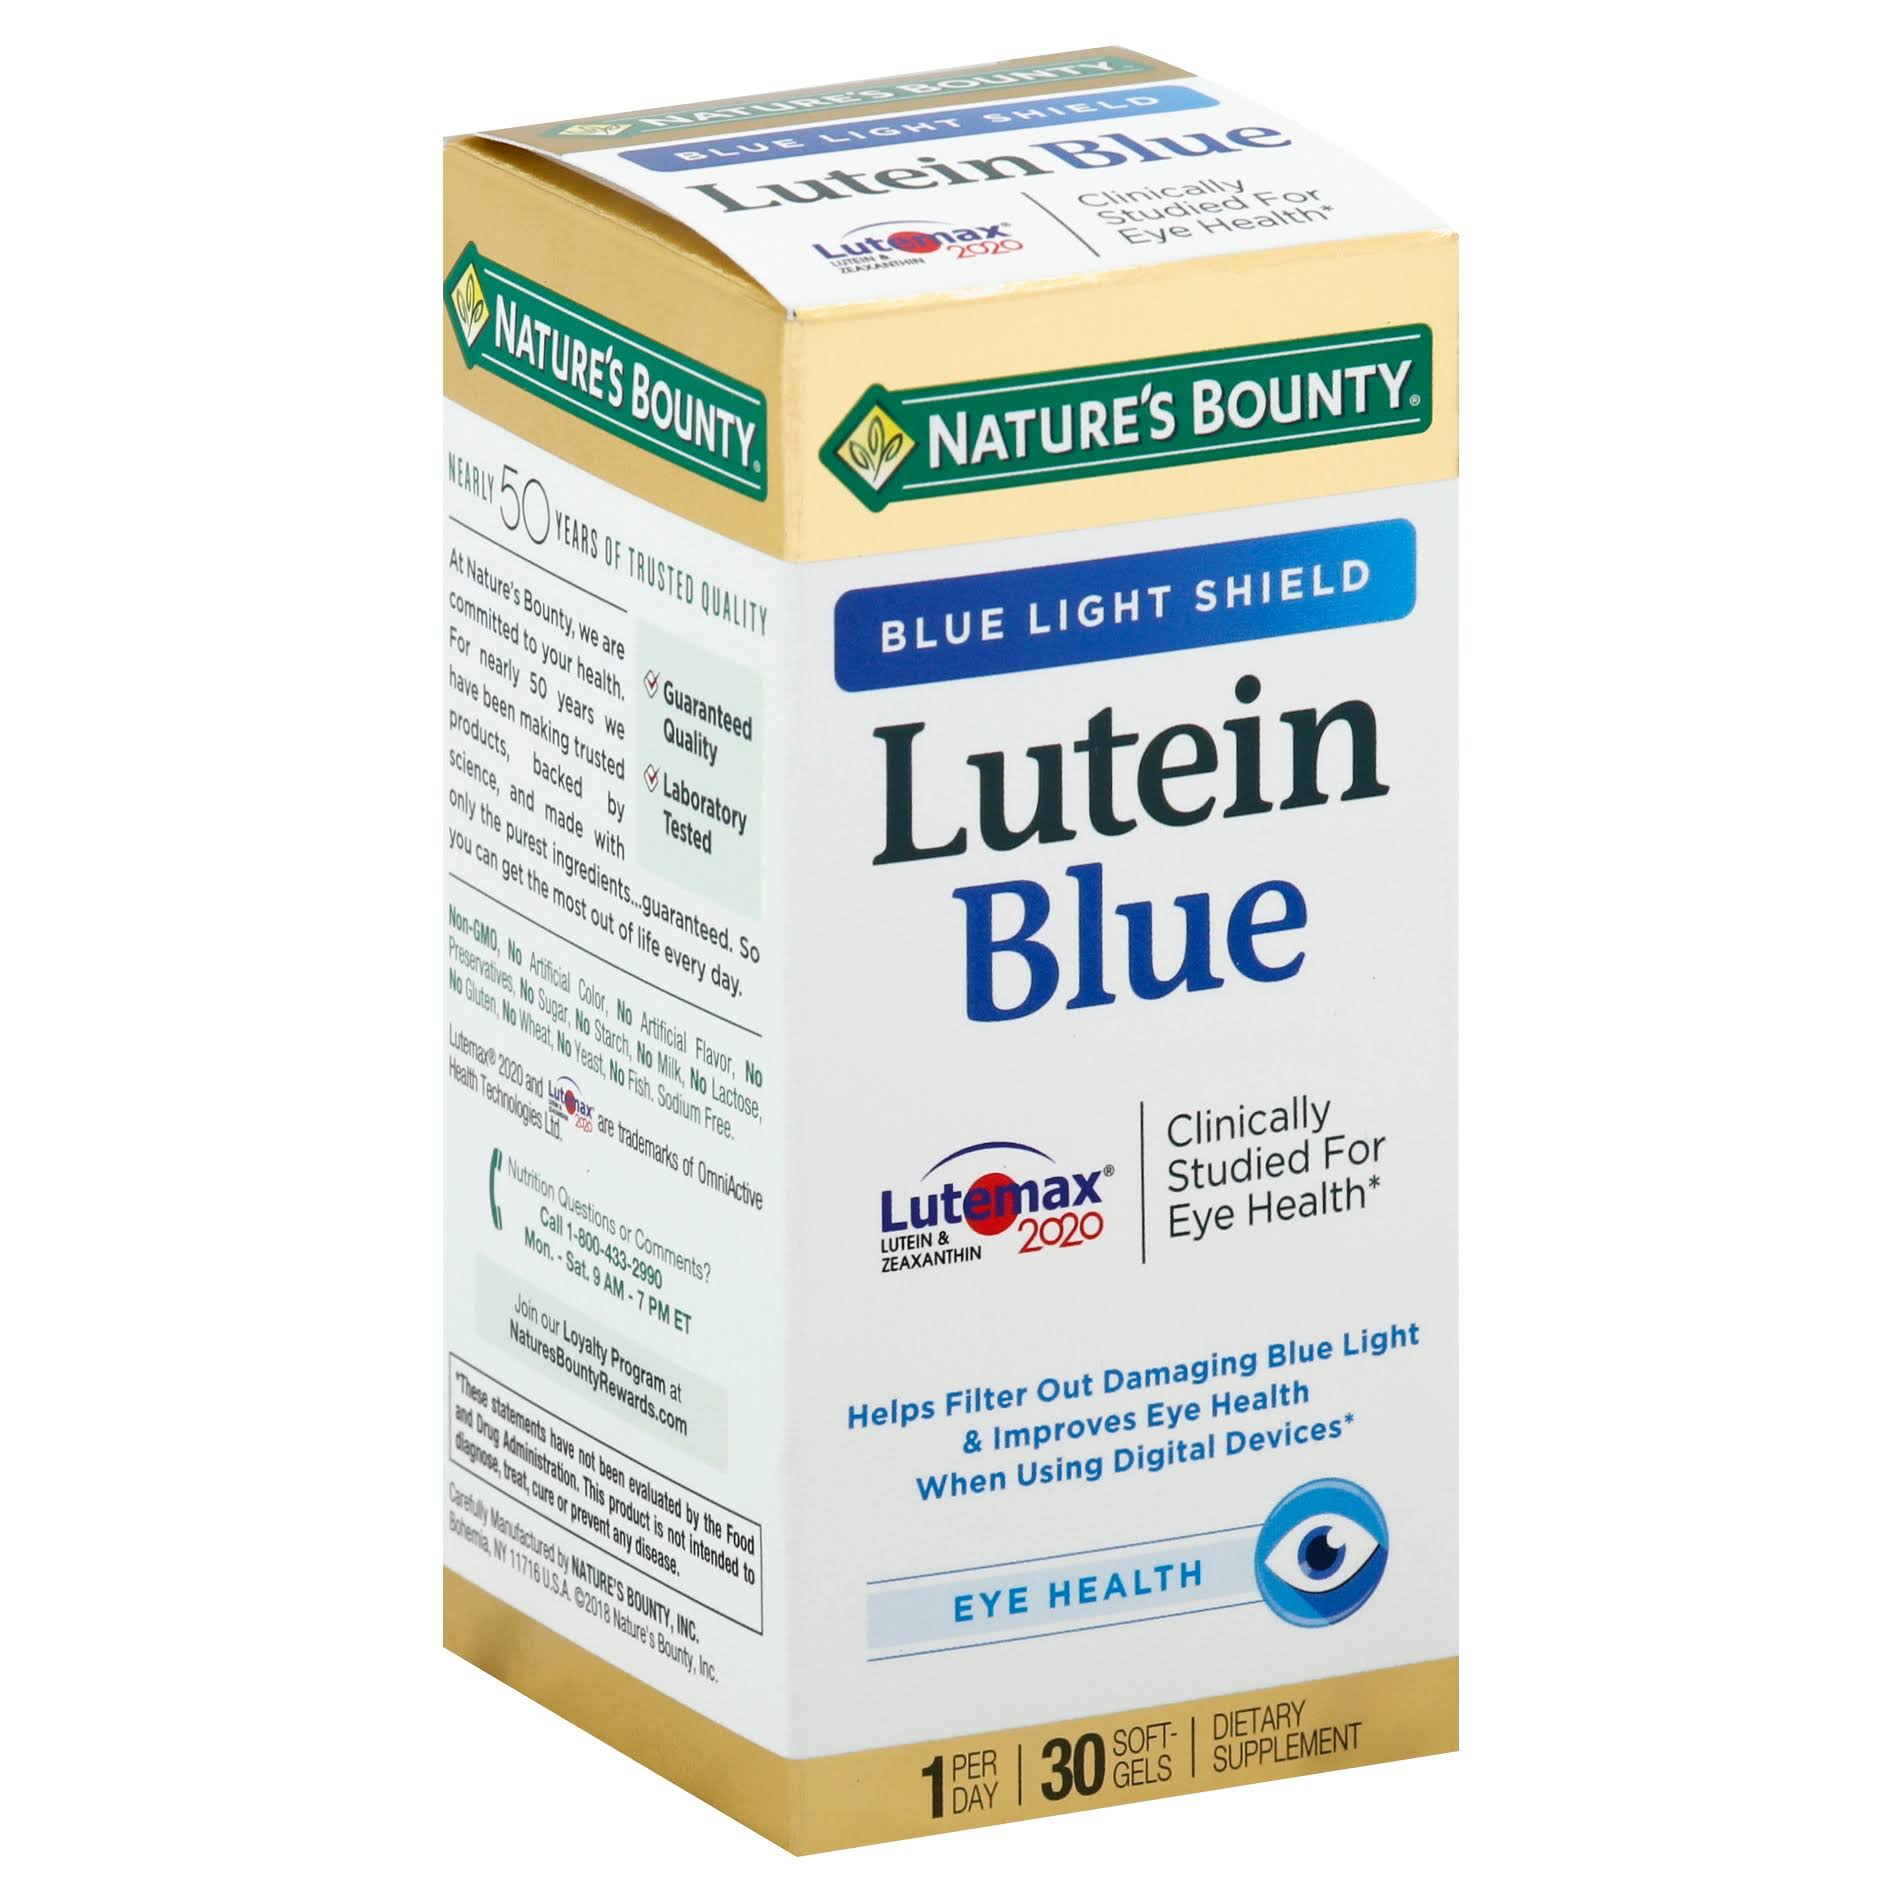 Nature's Bounty Lutein Blue Dietary Supplement - 30ct